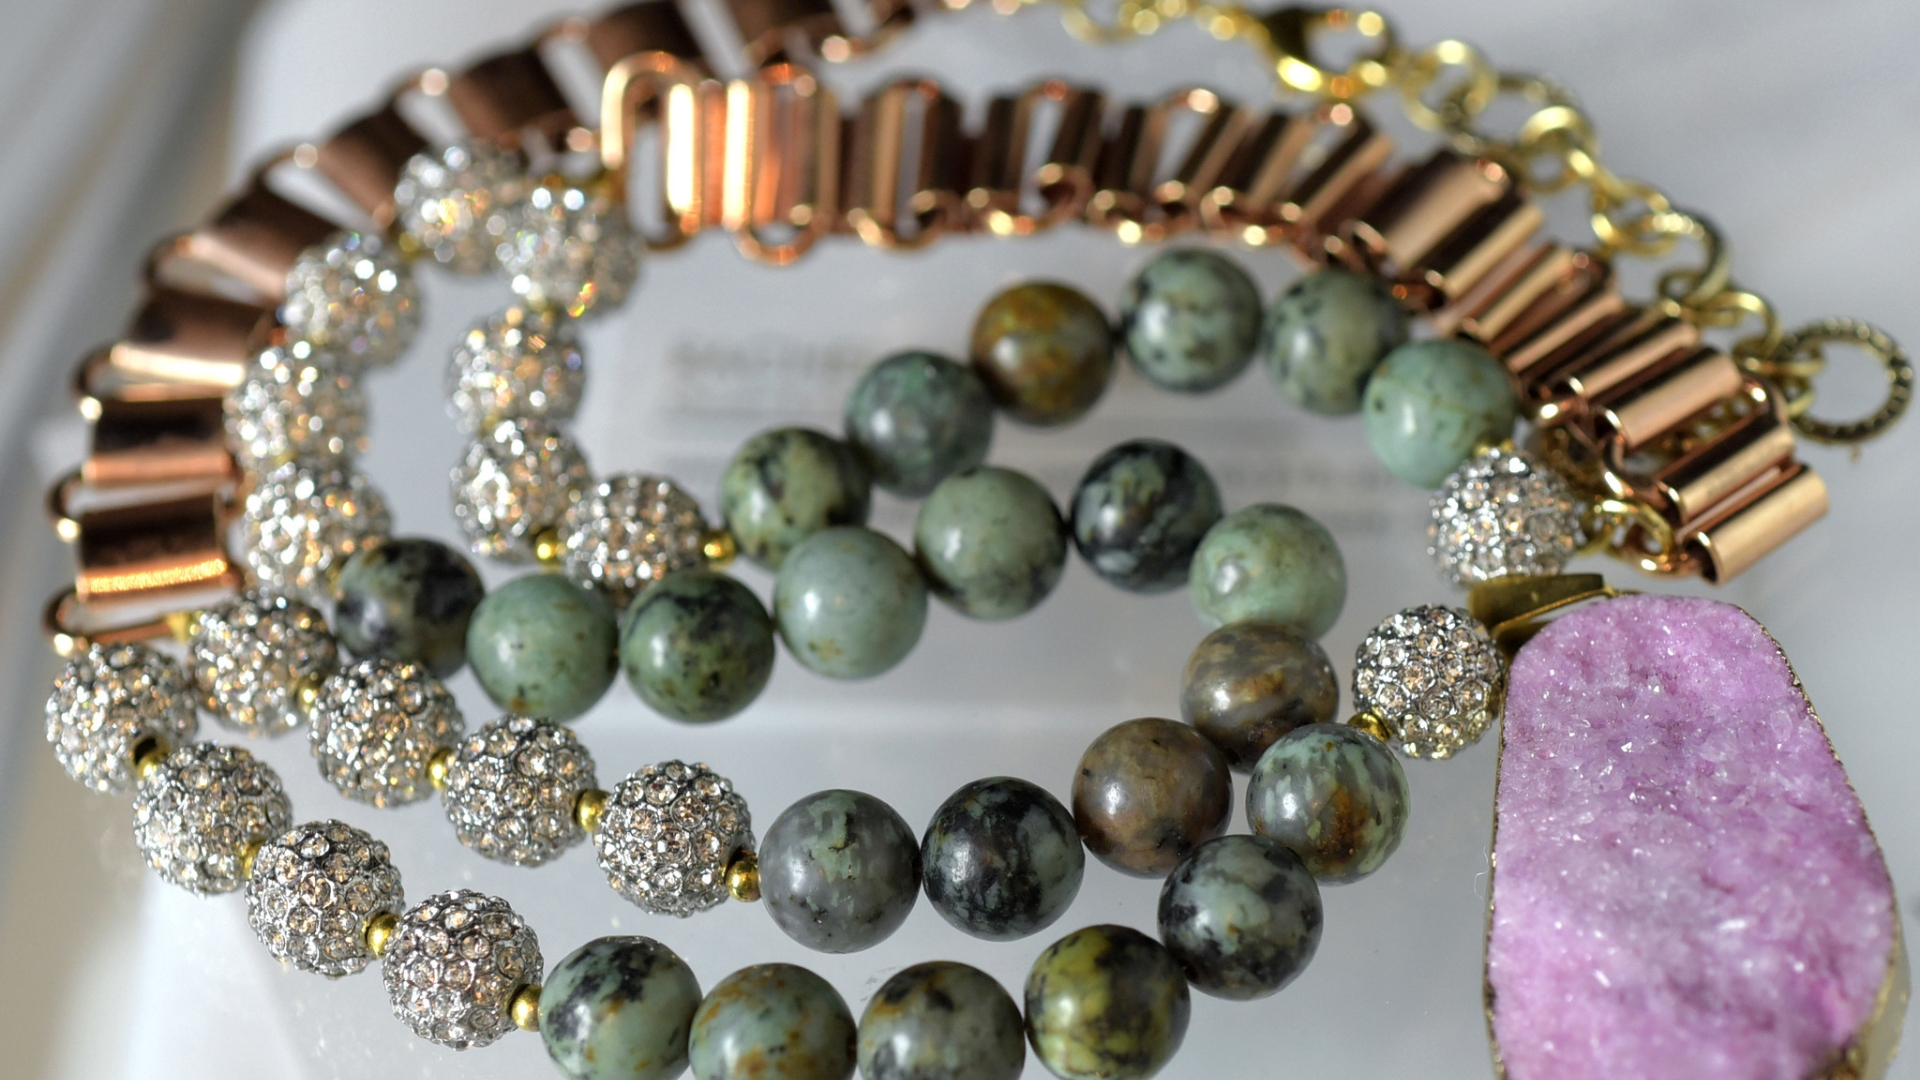 a78b967d4e911 Jewelry designer Rachel Mulherin could be Baltimore's next big name ...